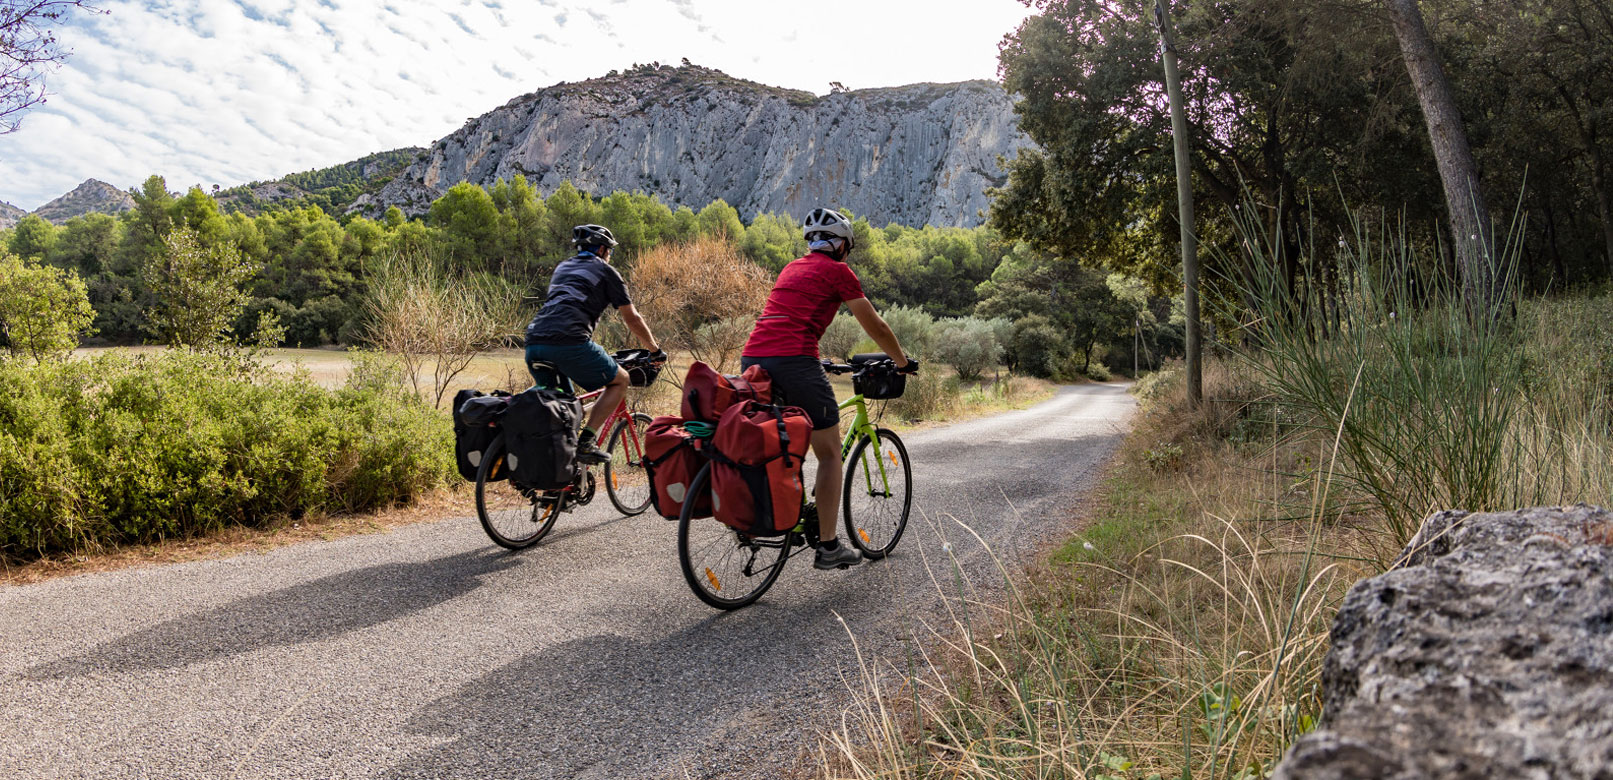 Leisure tourism in Vaucluse Provence © Rathay